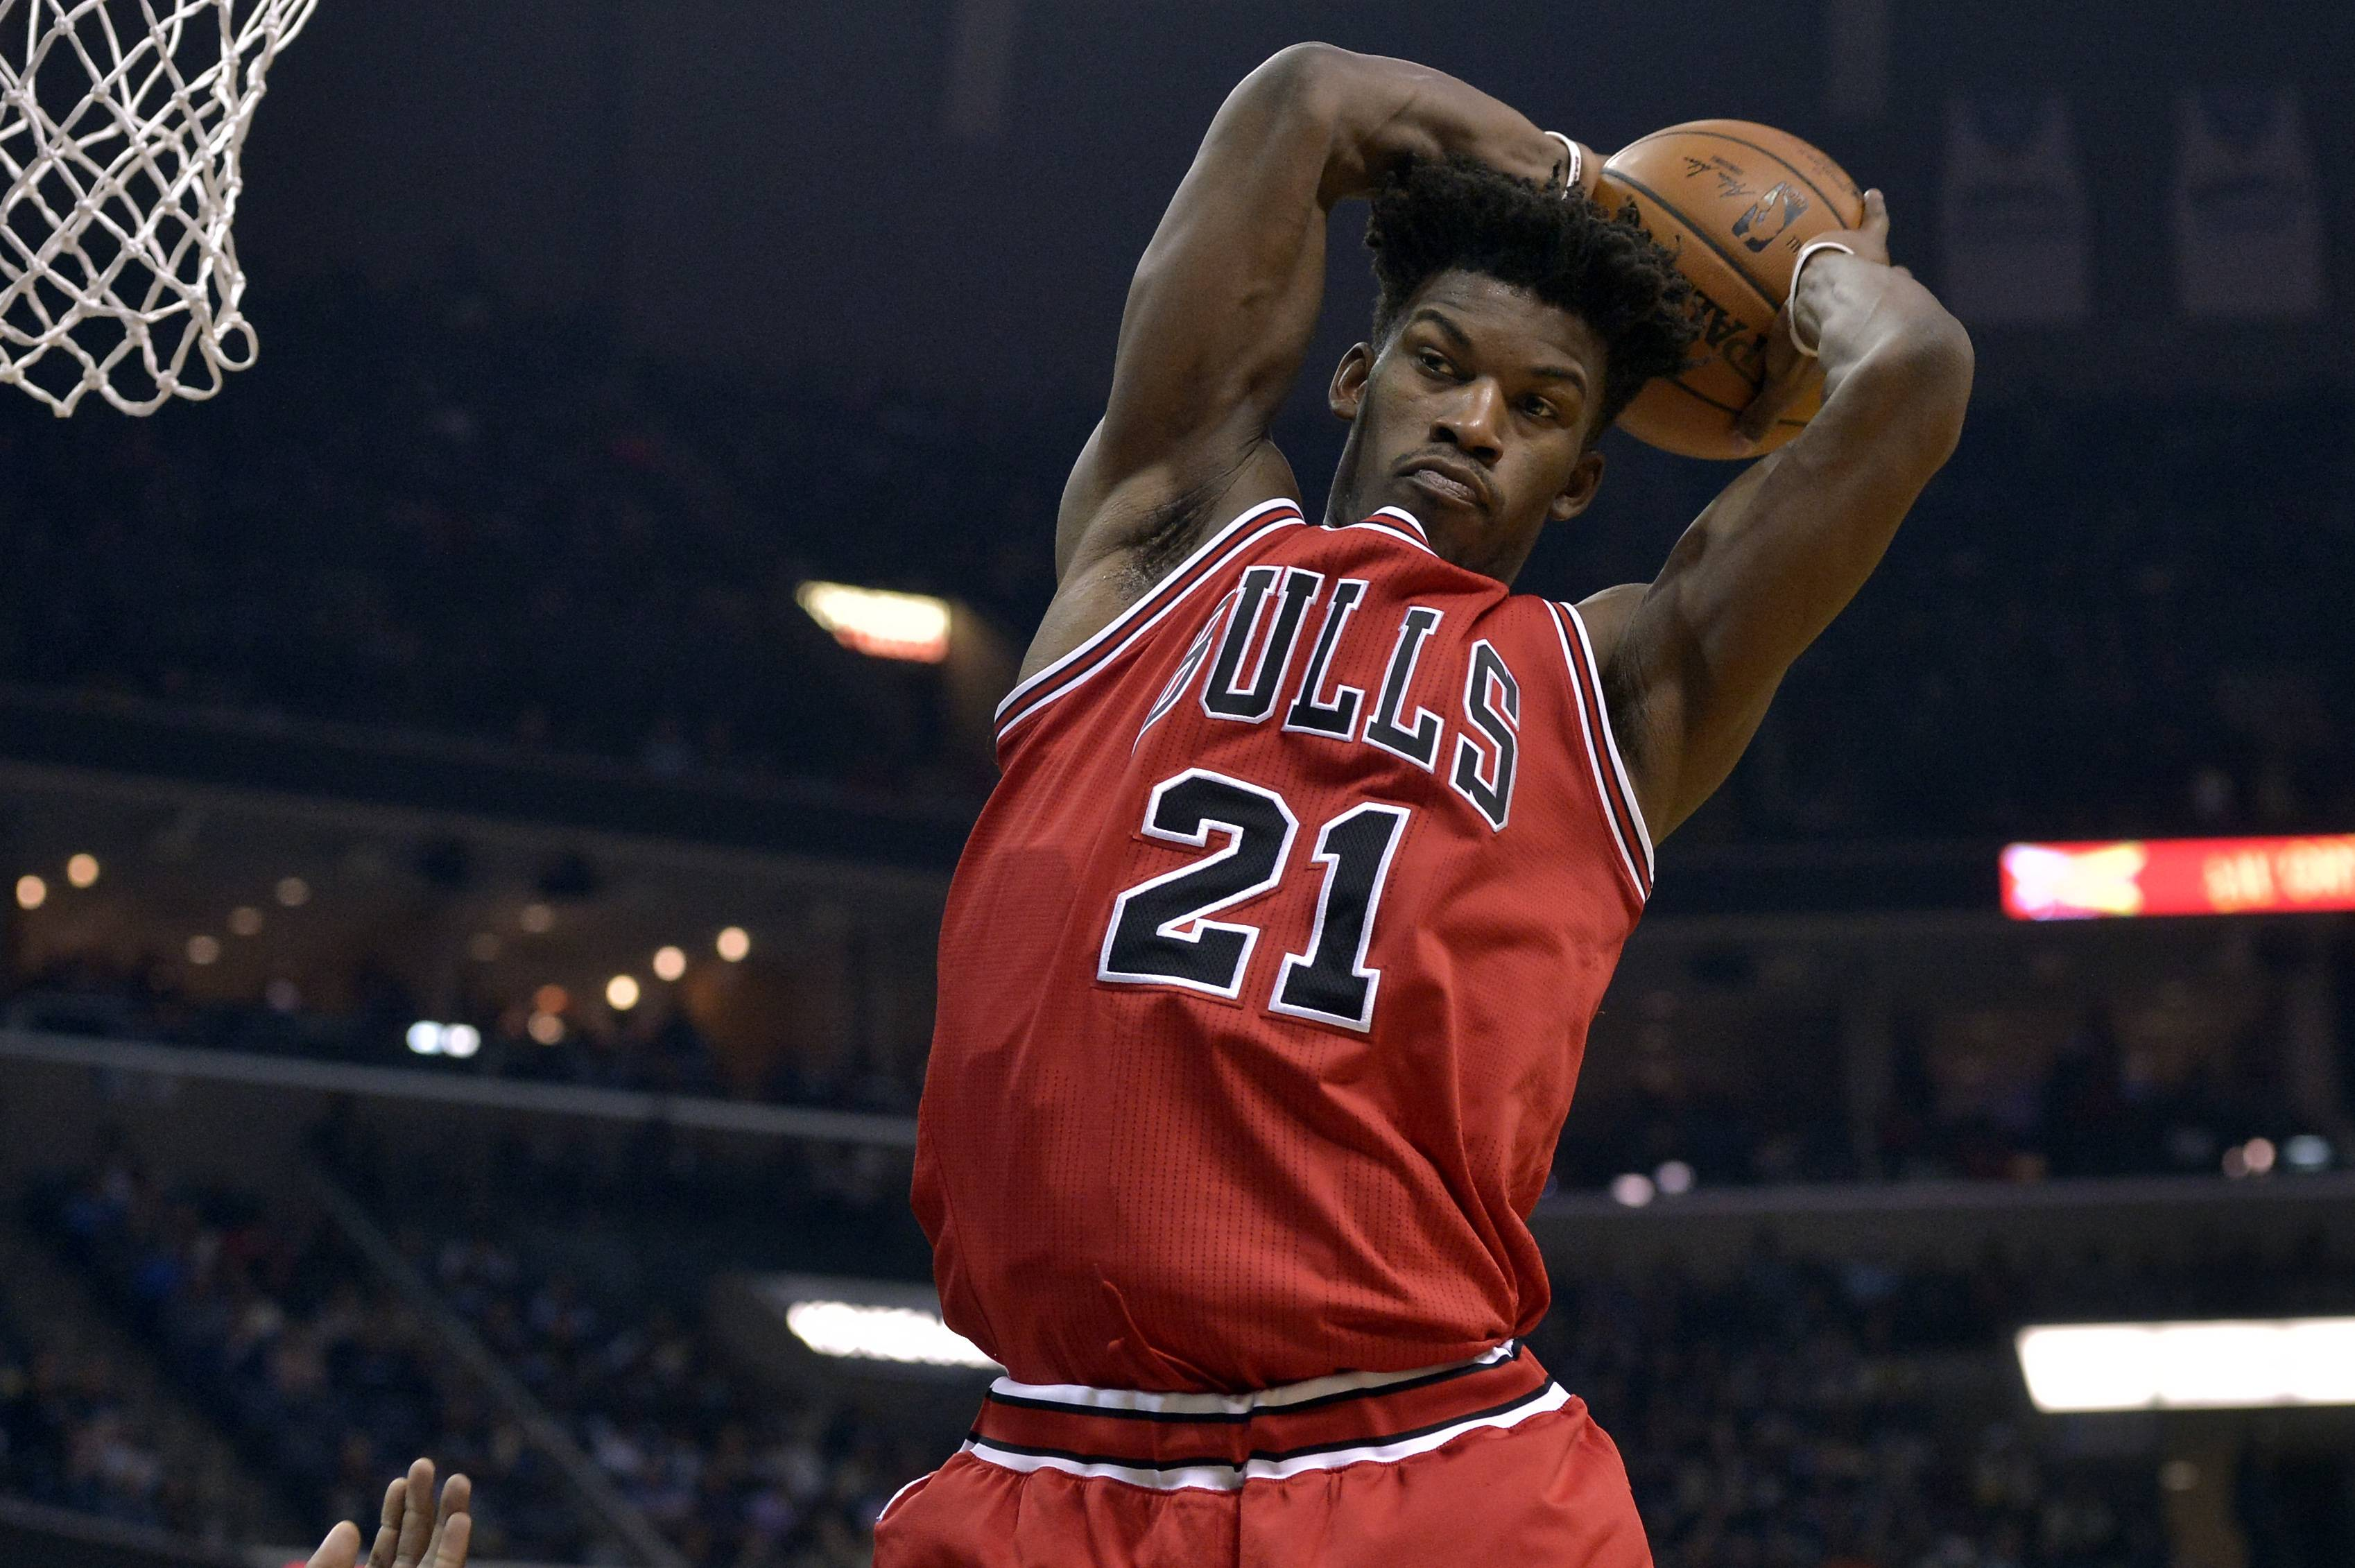 Jimmy Butler has made the all-star team twice and finally took the next step Thursday when he was announced as an Eastern Conference starter in the NBA All-Star Game. He'll join Cleveland's LeBron James and Kyrie Irving, Toronto's DeMar DeRozan and Milwaukee's Giannis Antetokounmpo in the East lineup for the Feb. 19 game in New Orleans.